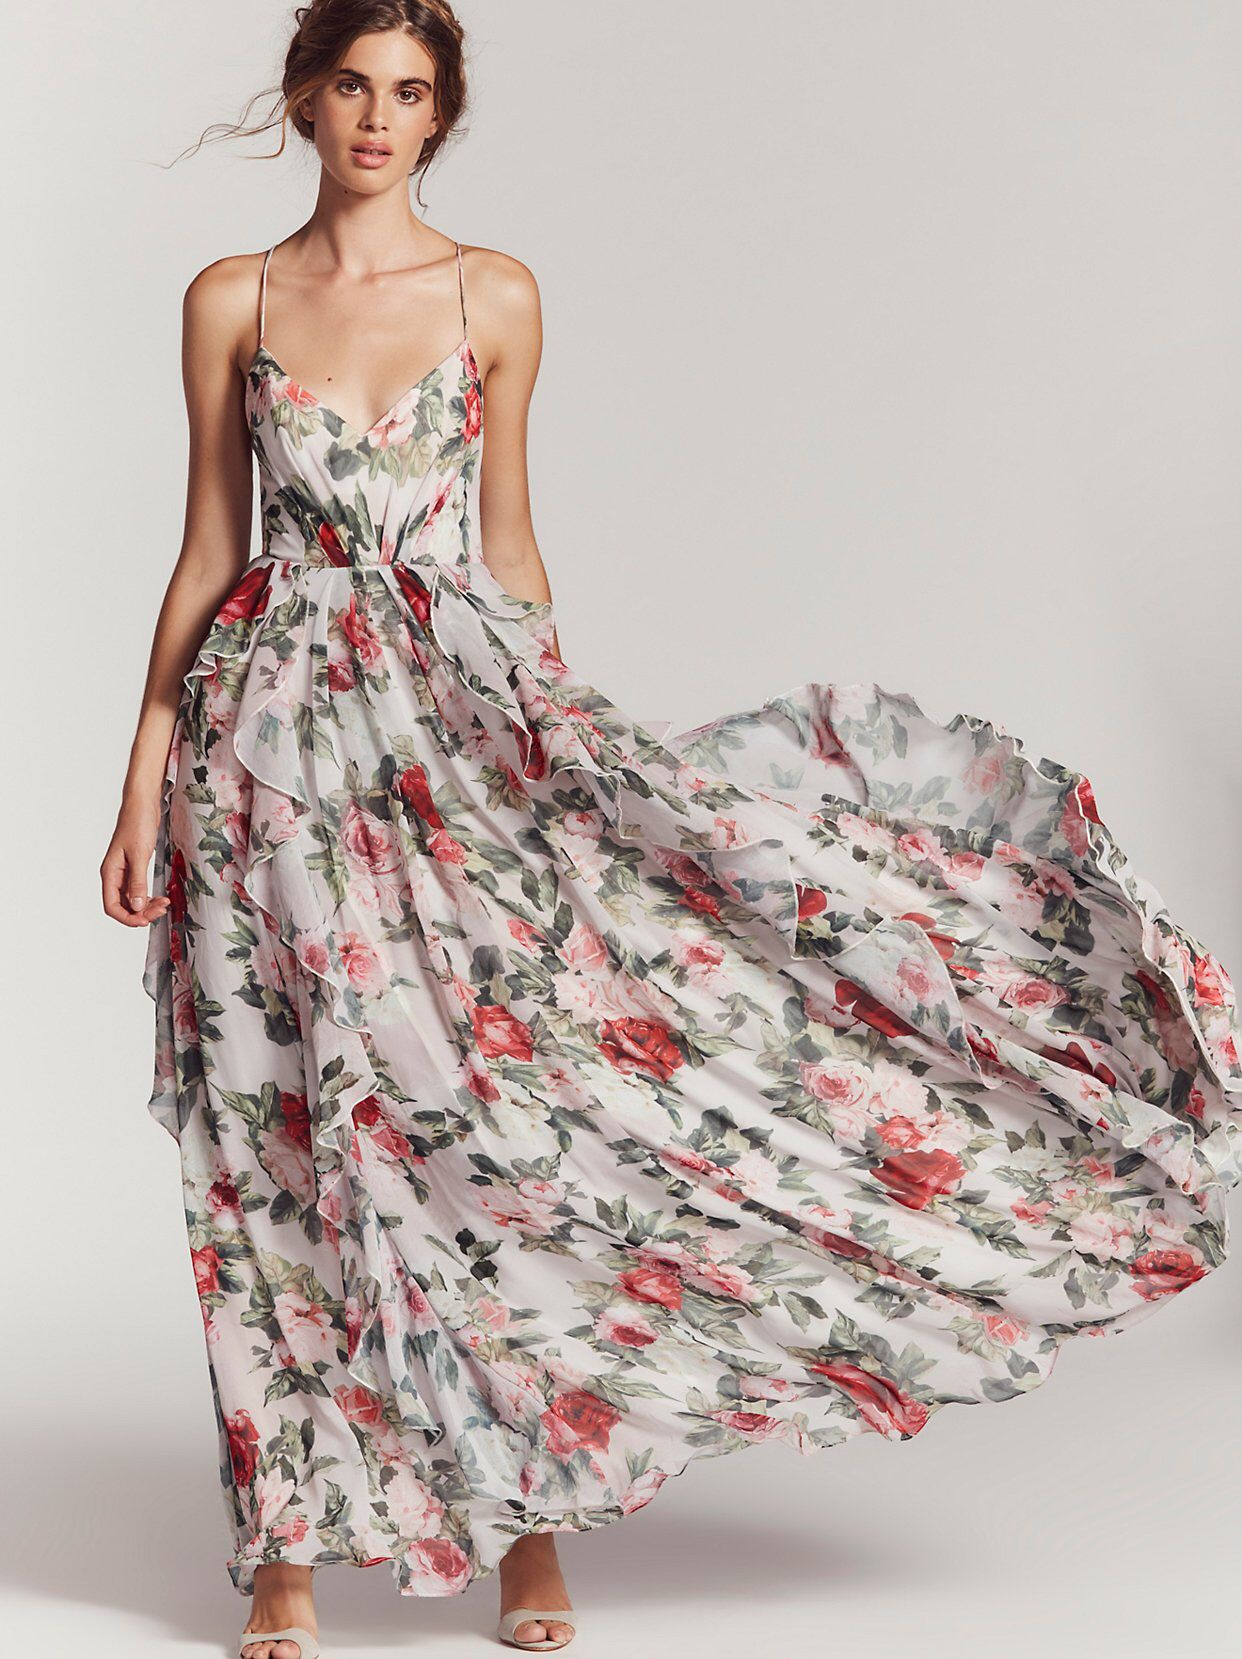 Queen Ann Maxi Dress from Free People!